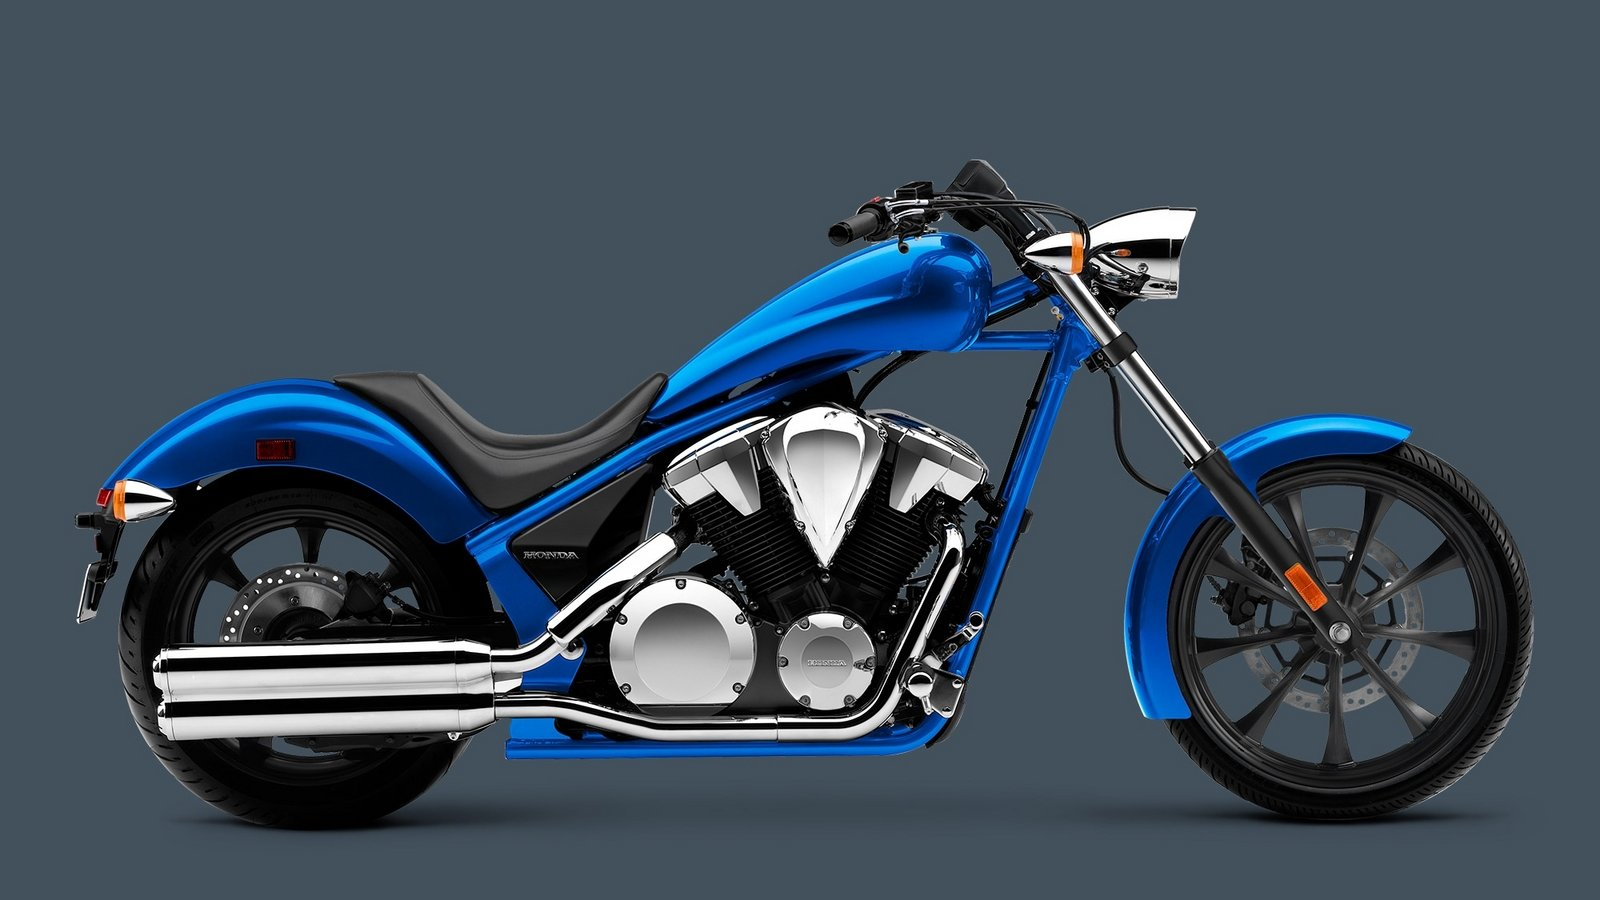 honda fury stateline picture  motorcycle review  top speed